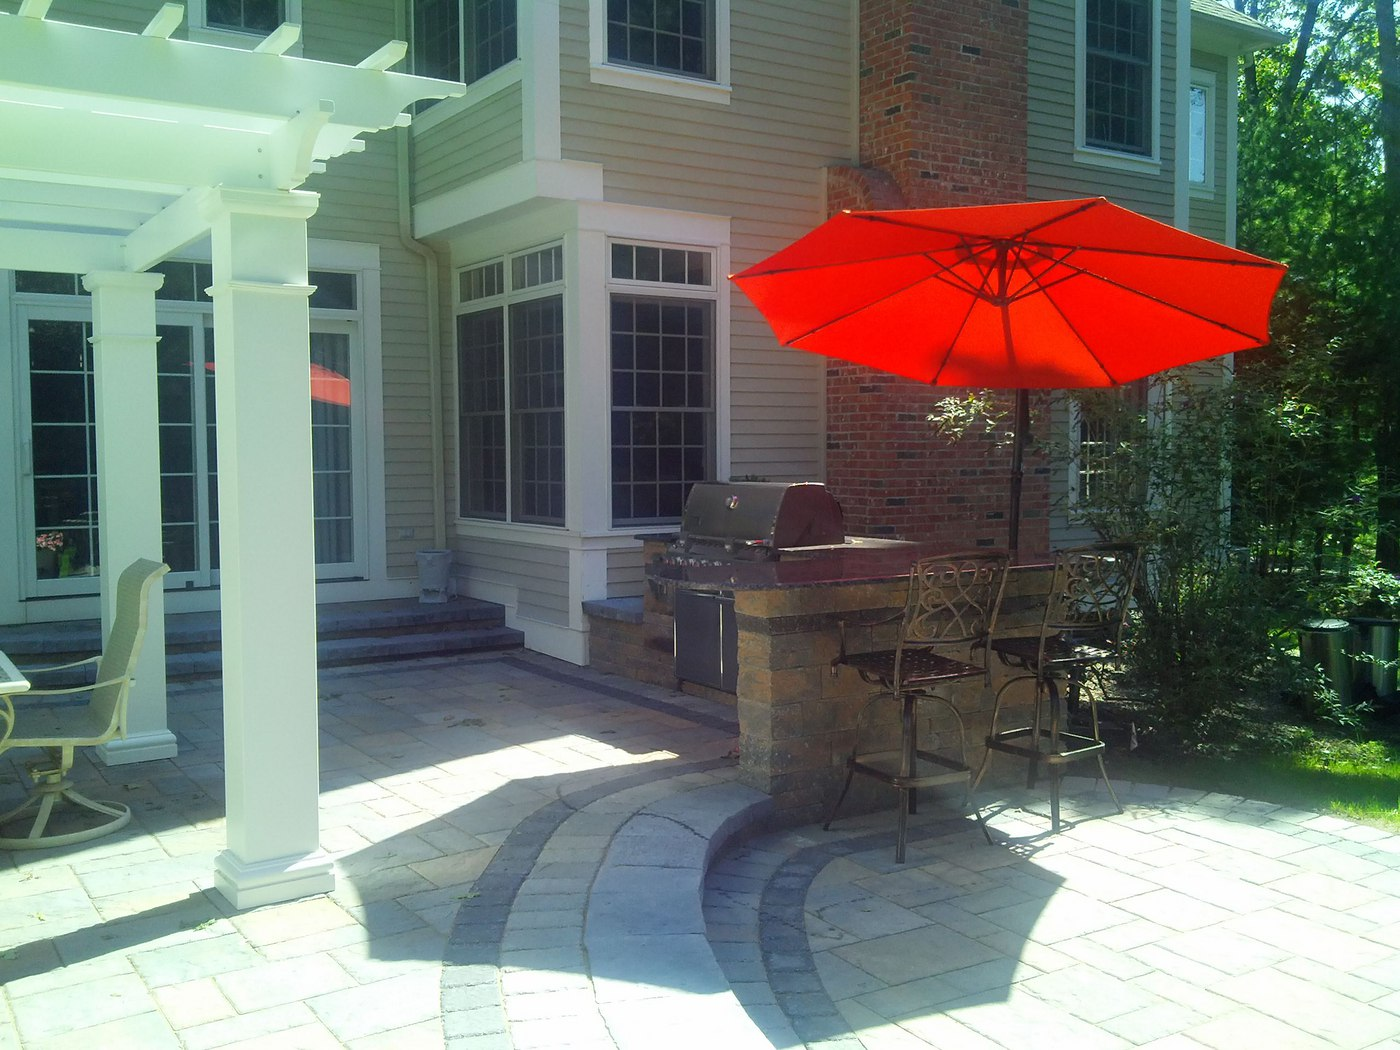 Outdoor Kitchen and Bar with Stainless Steel Webber Grill on Paver Patio with Pergola by Bahler Brothers in Avon,CT